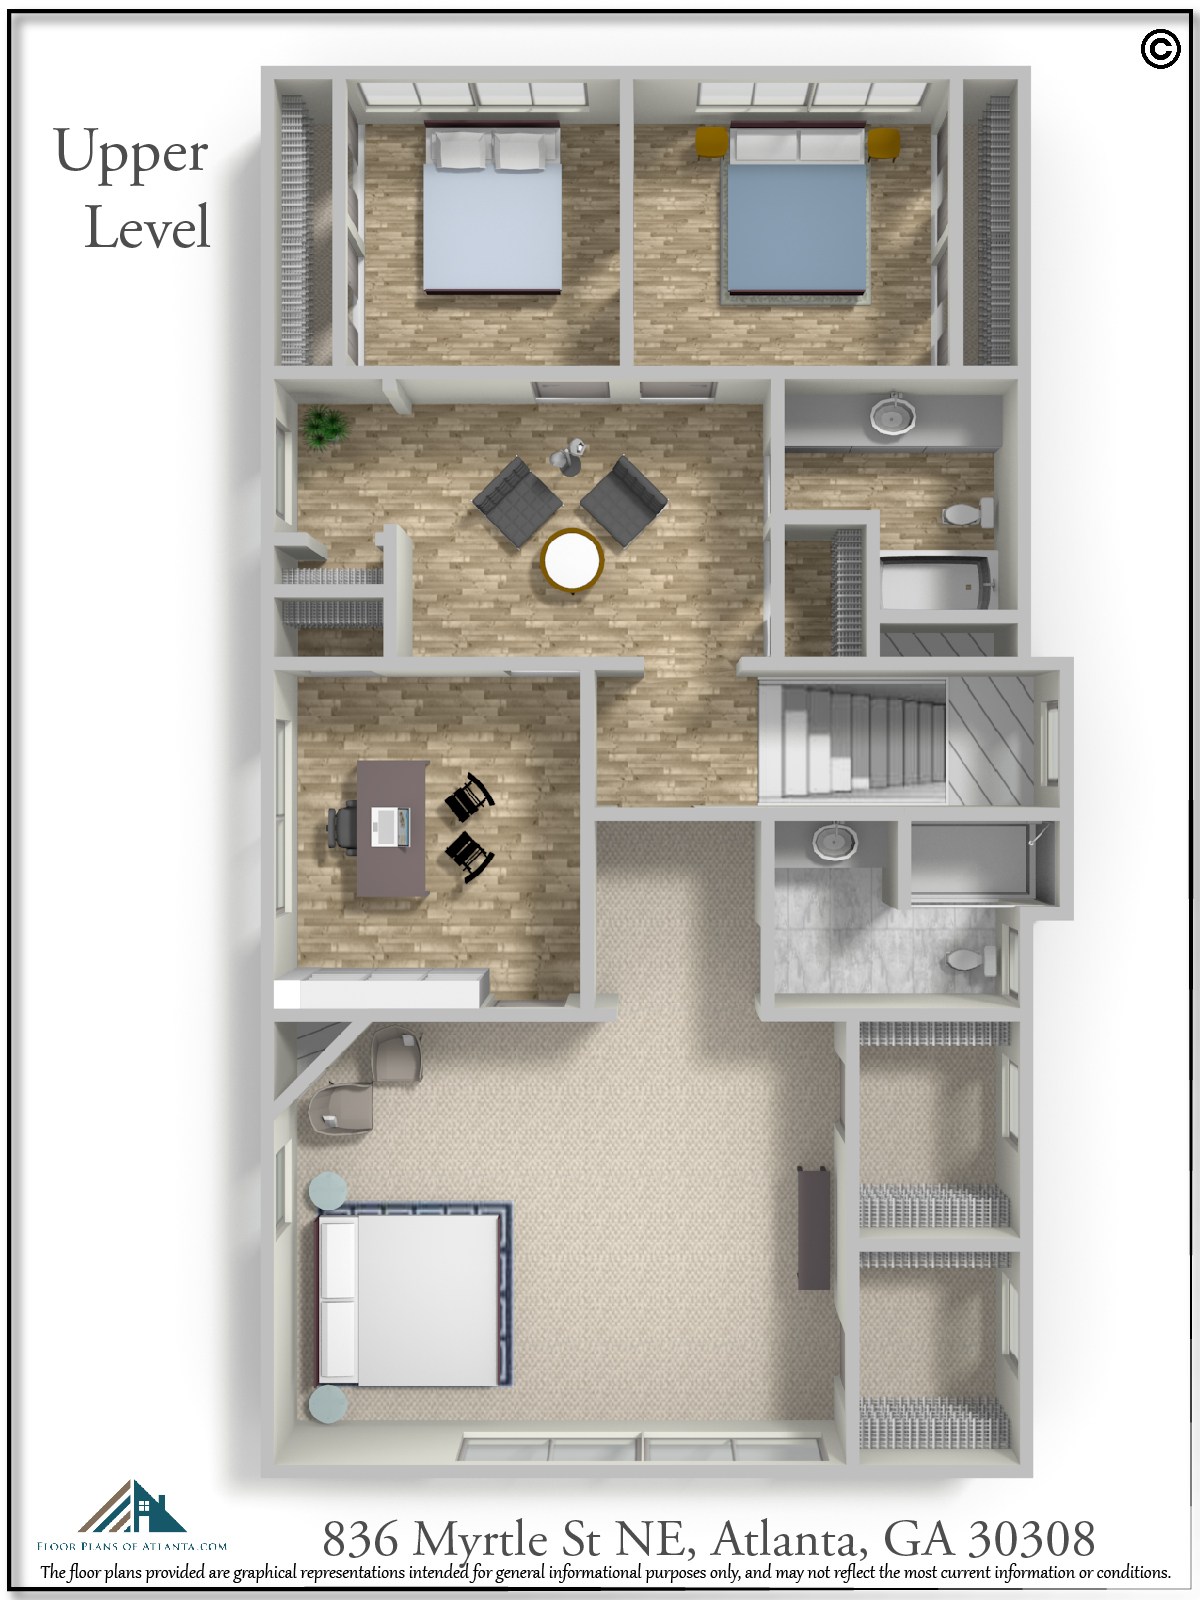 Upper Level Floor Plan - Perspective #3